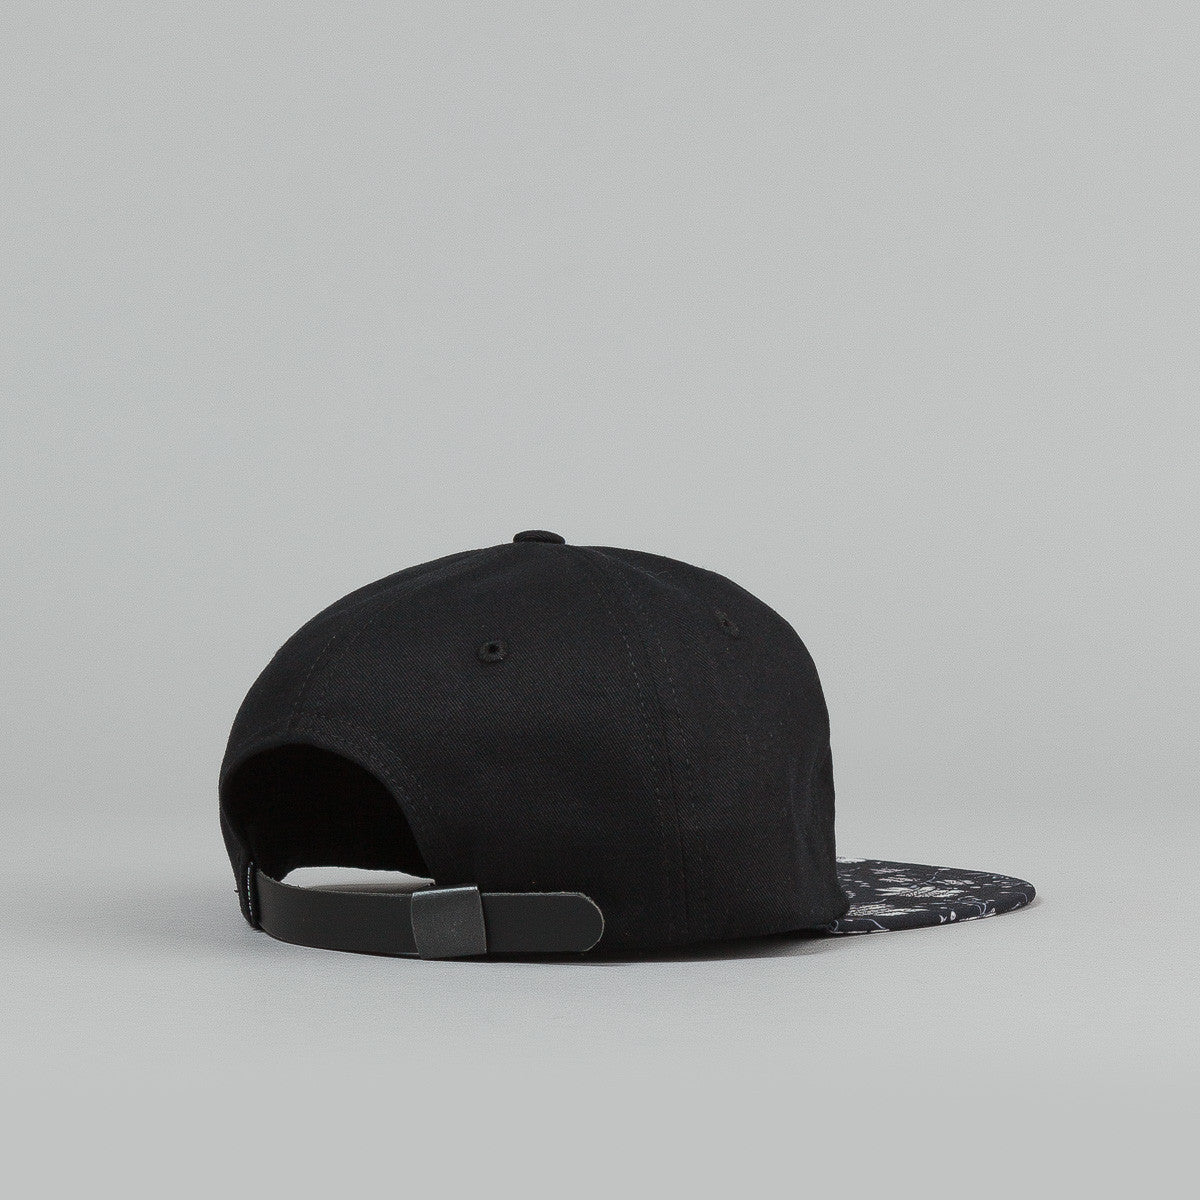 The Quiet Life Nikita Polo Cap - Black Upper / Floral Bill